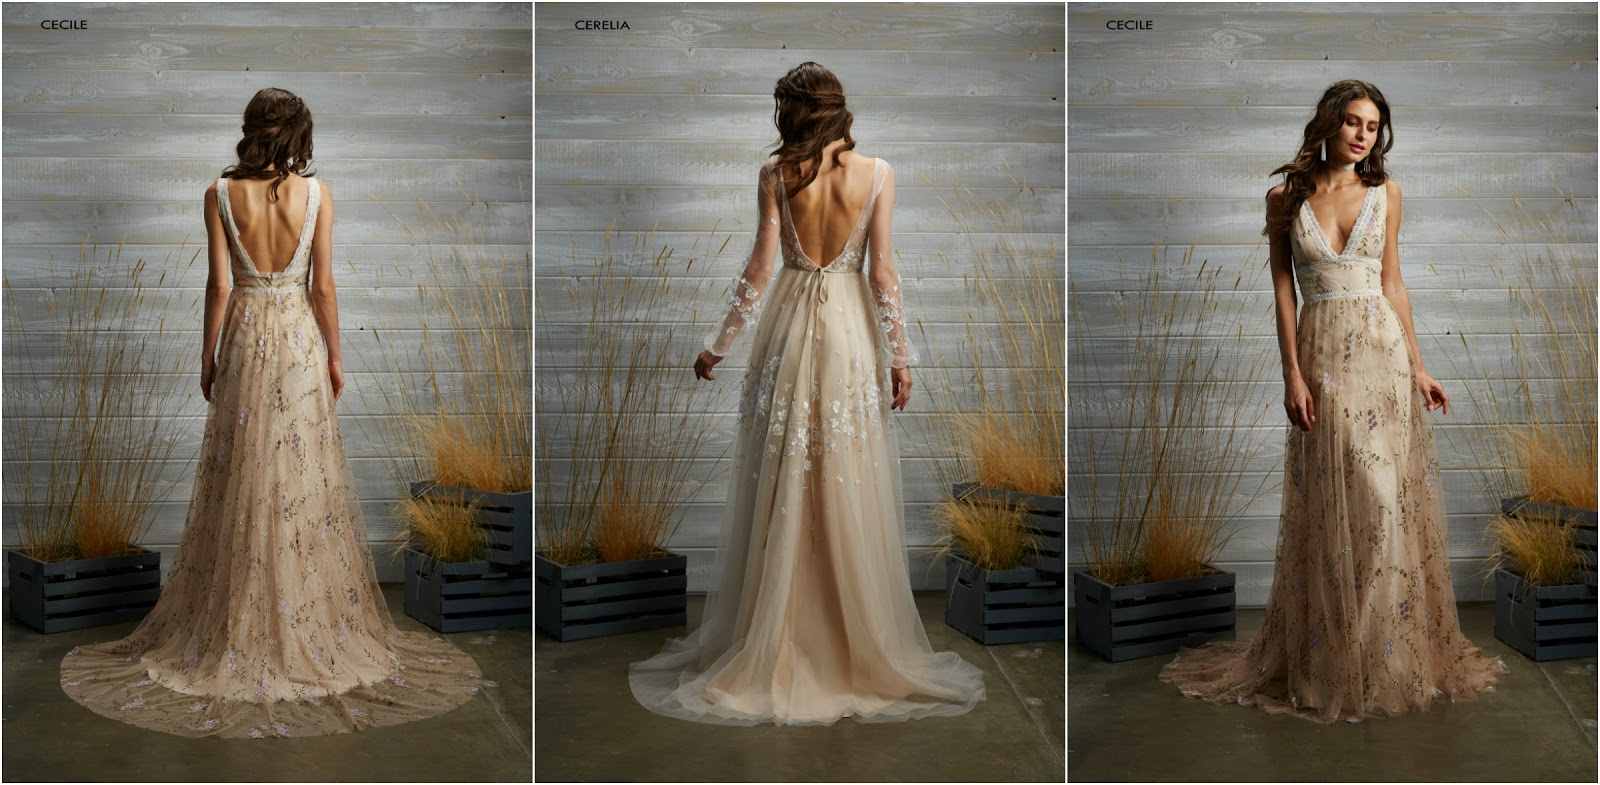 Superb Wedding Dresses 64 Amazing Which is your favorite